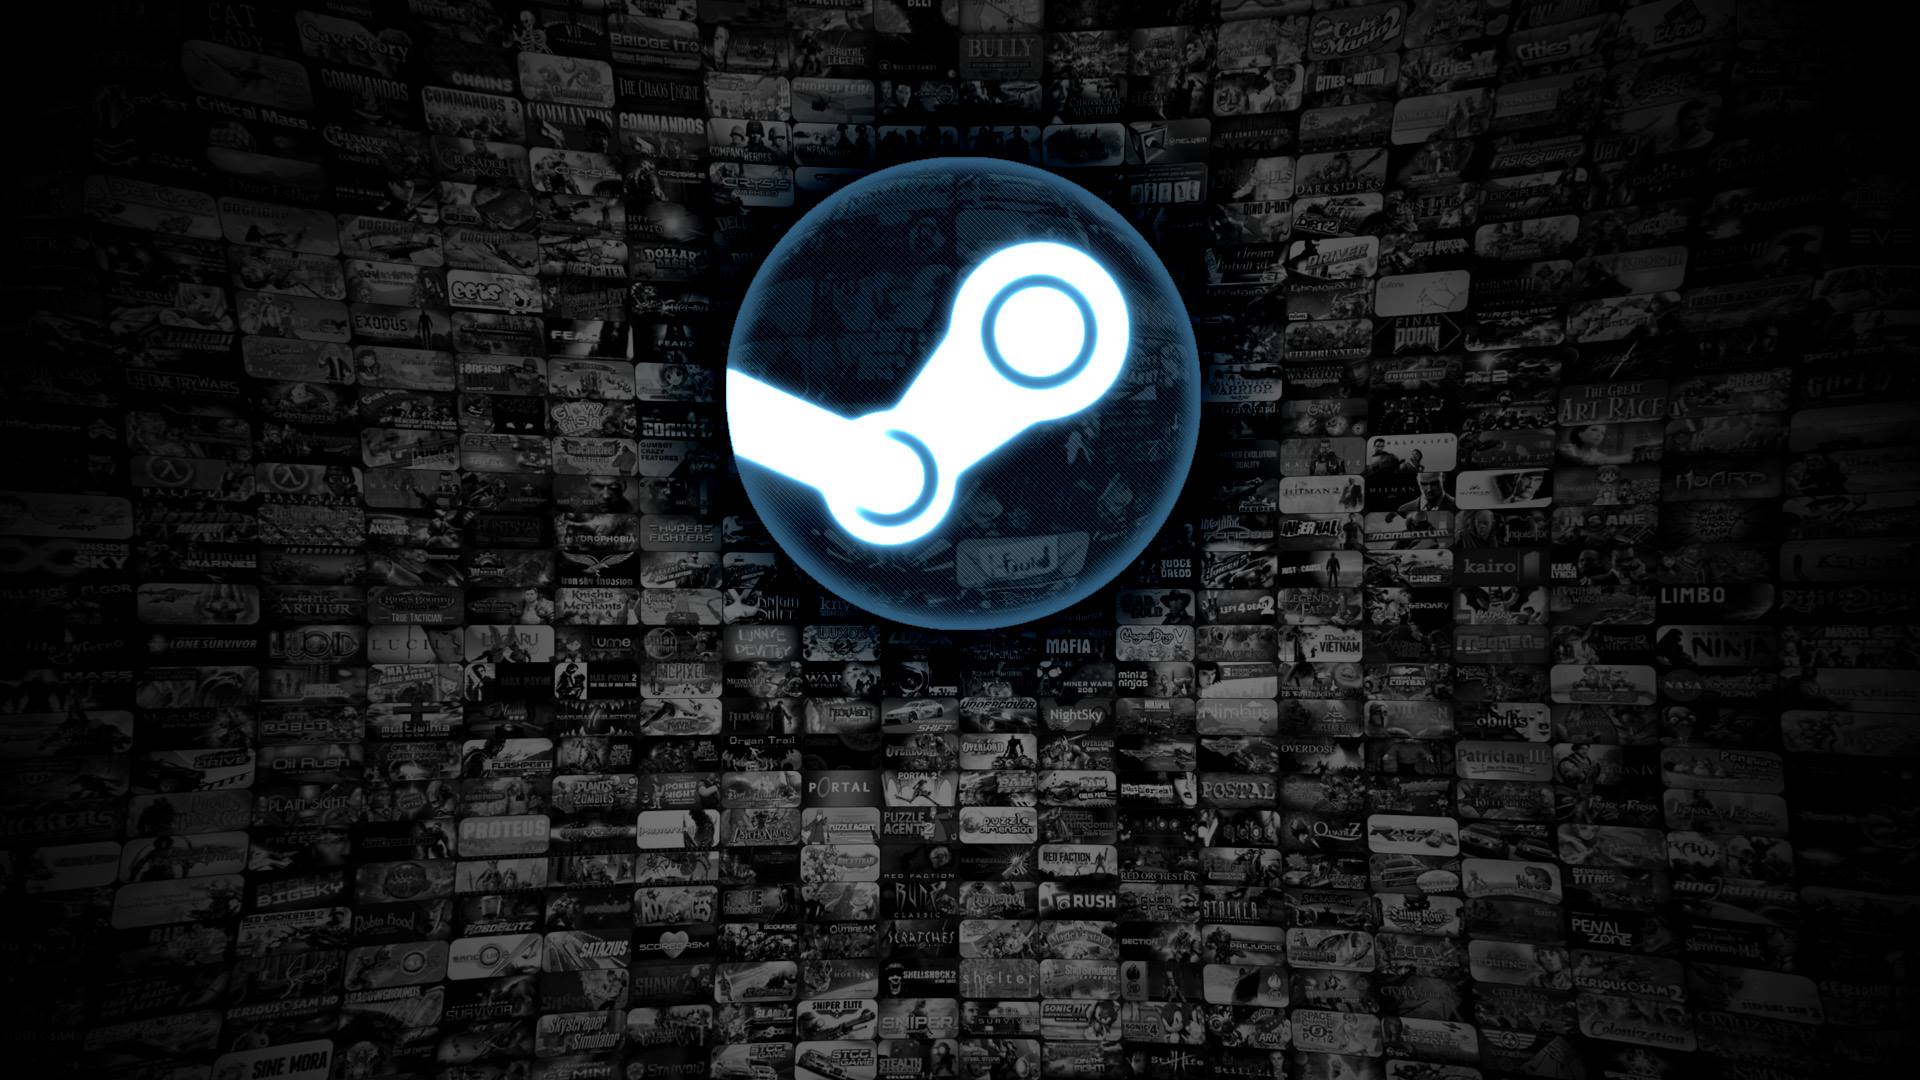 Steam now has more monthly active players than Xbox Live